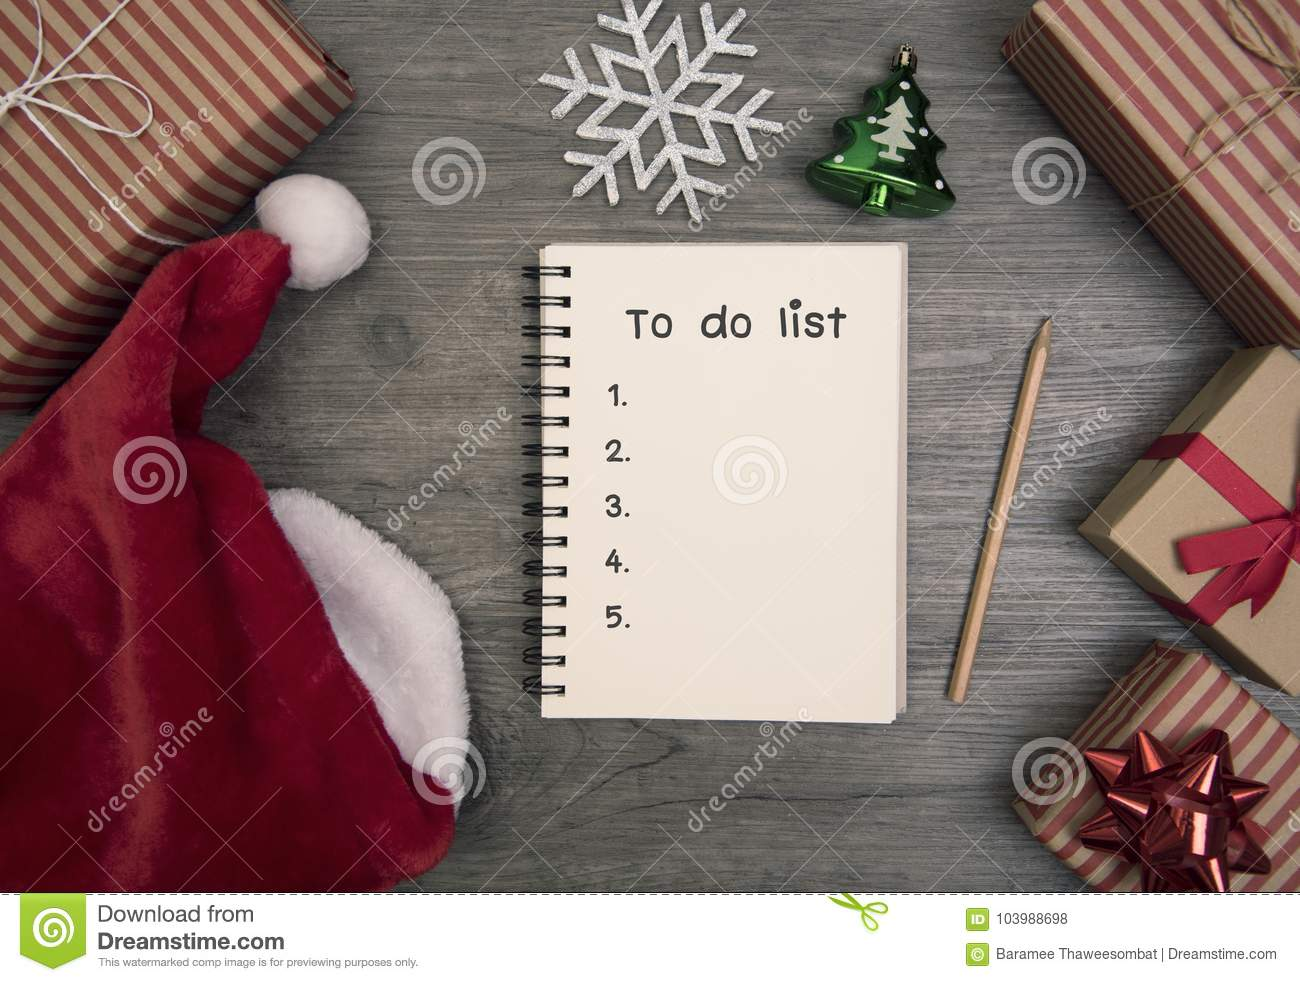 to do list for start christmas and decorated with gift box on wooden table